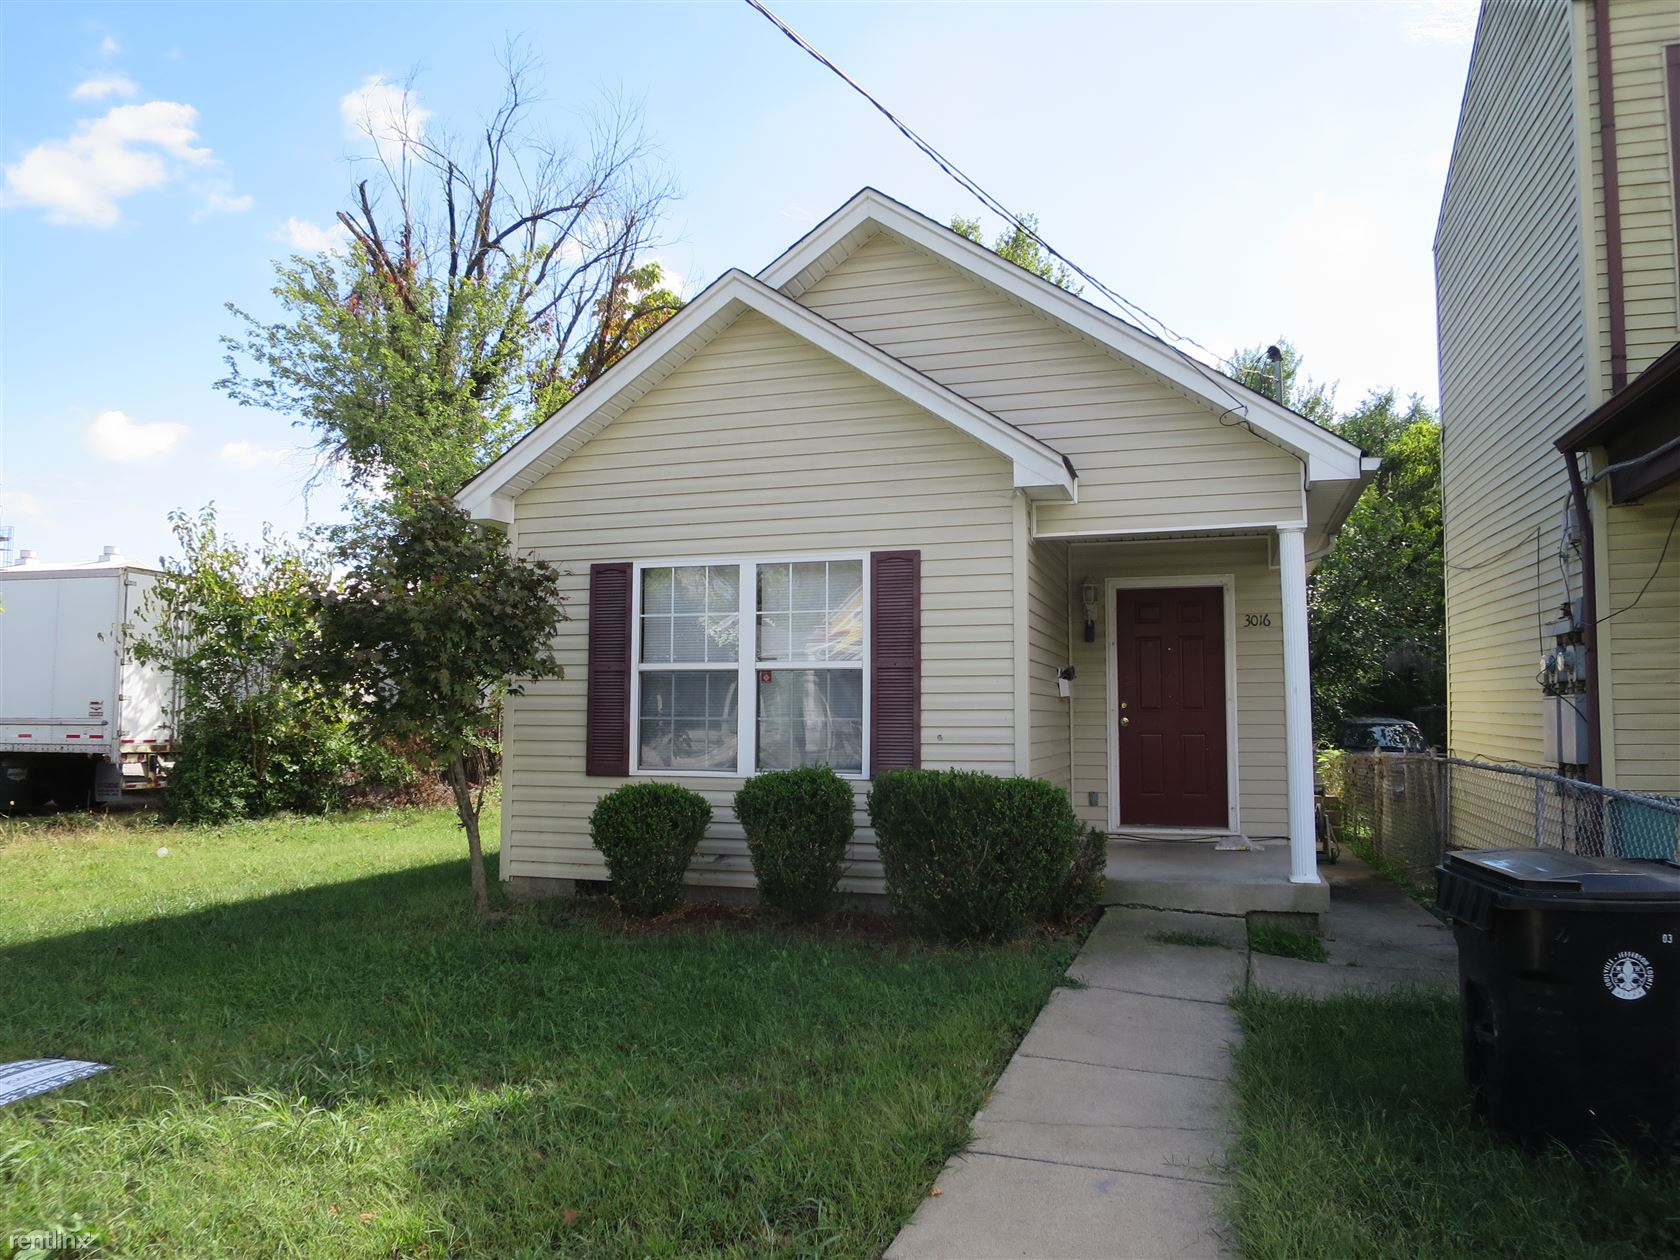 3016 Greenwood Ave, Louisville, KY 40211